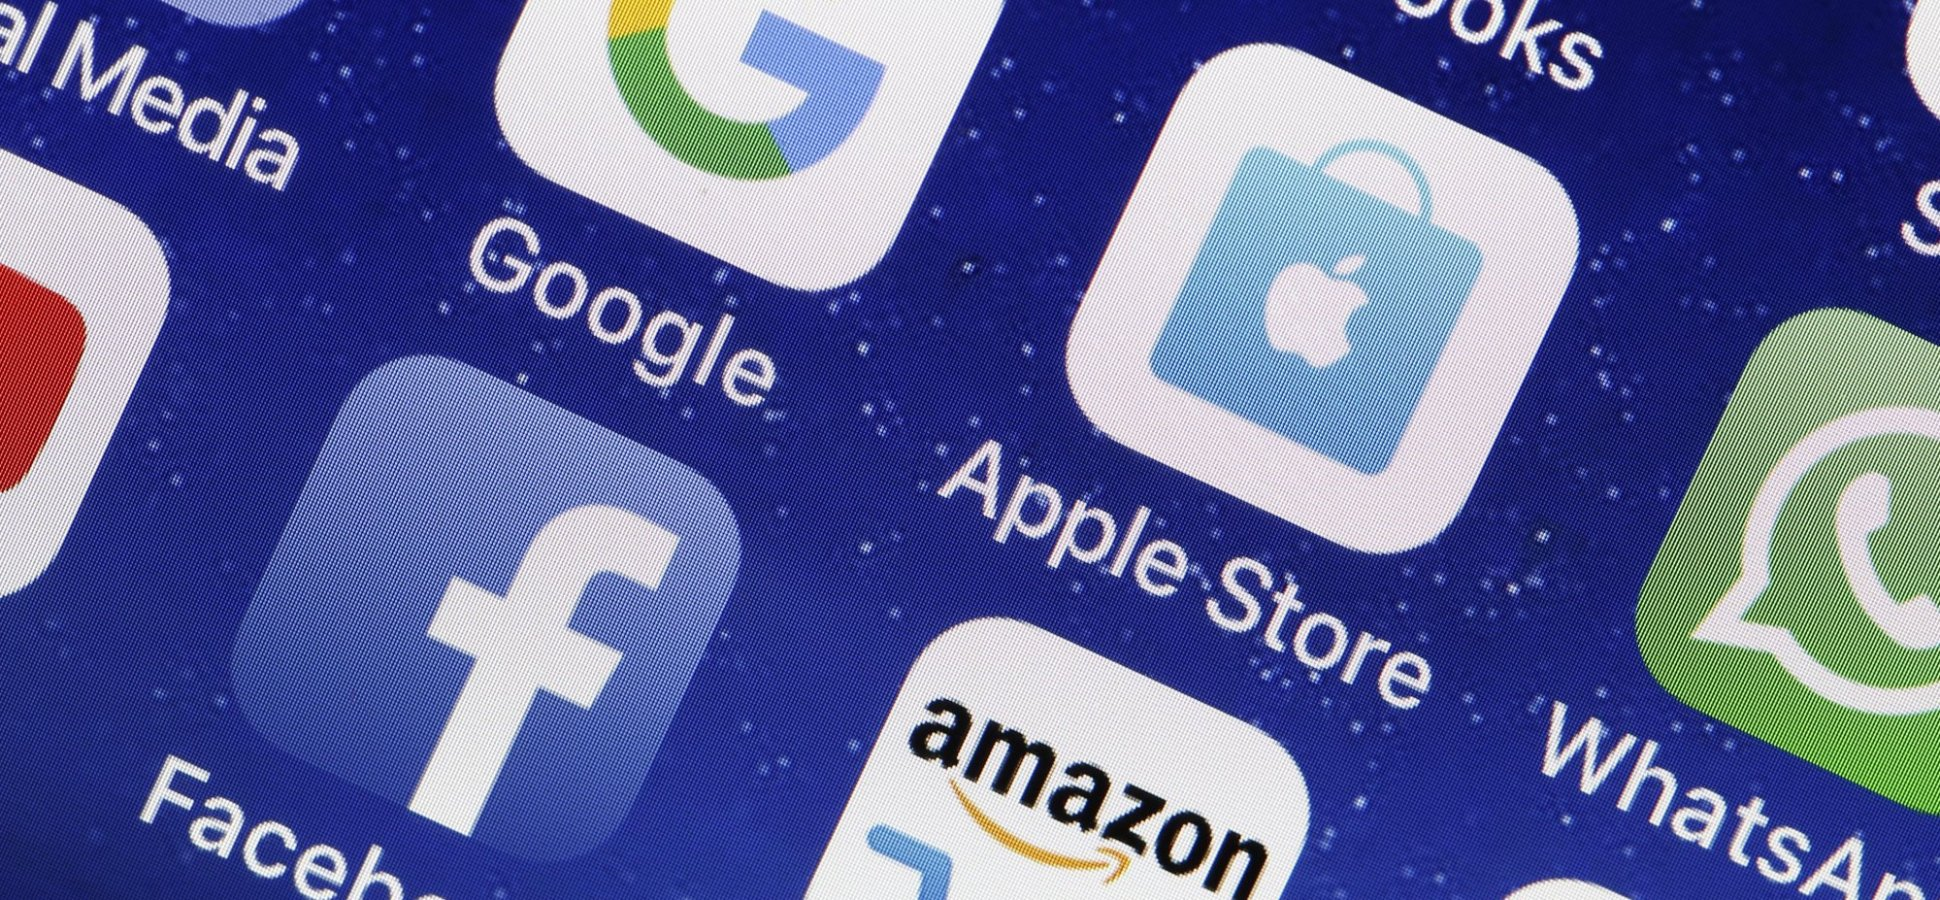 Apple, Google and Netflix All Use This Surprising Strategy to Find the Best Candidates. (Yes, You Should Definitely Copy It)